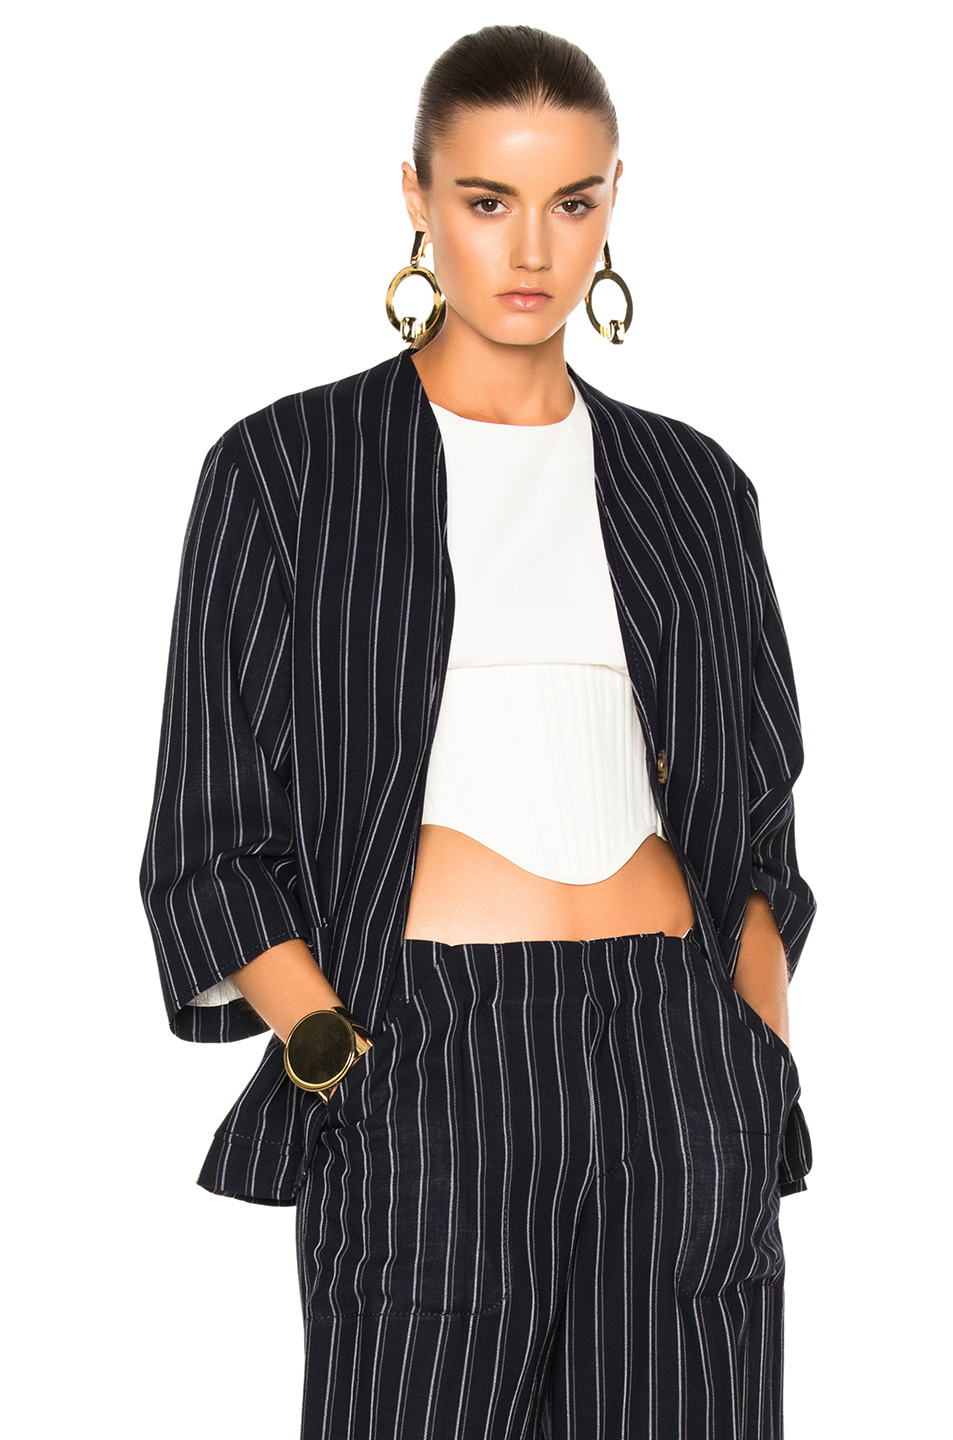 Acne Studios Jada Suit Jacket in Blue,Stripes